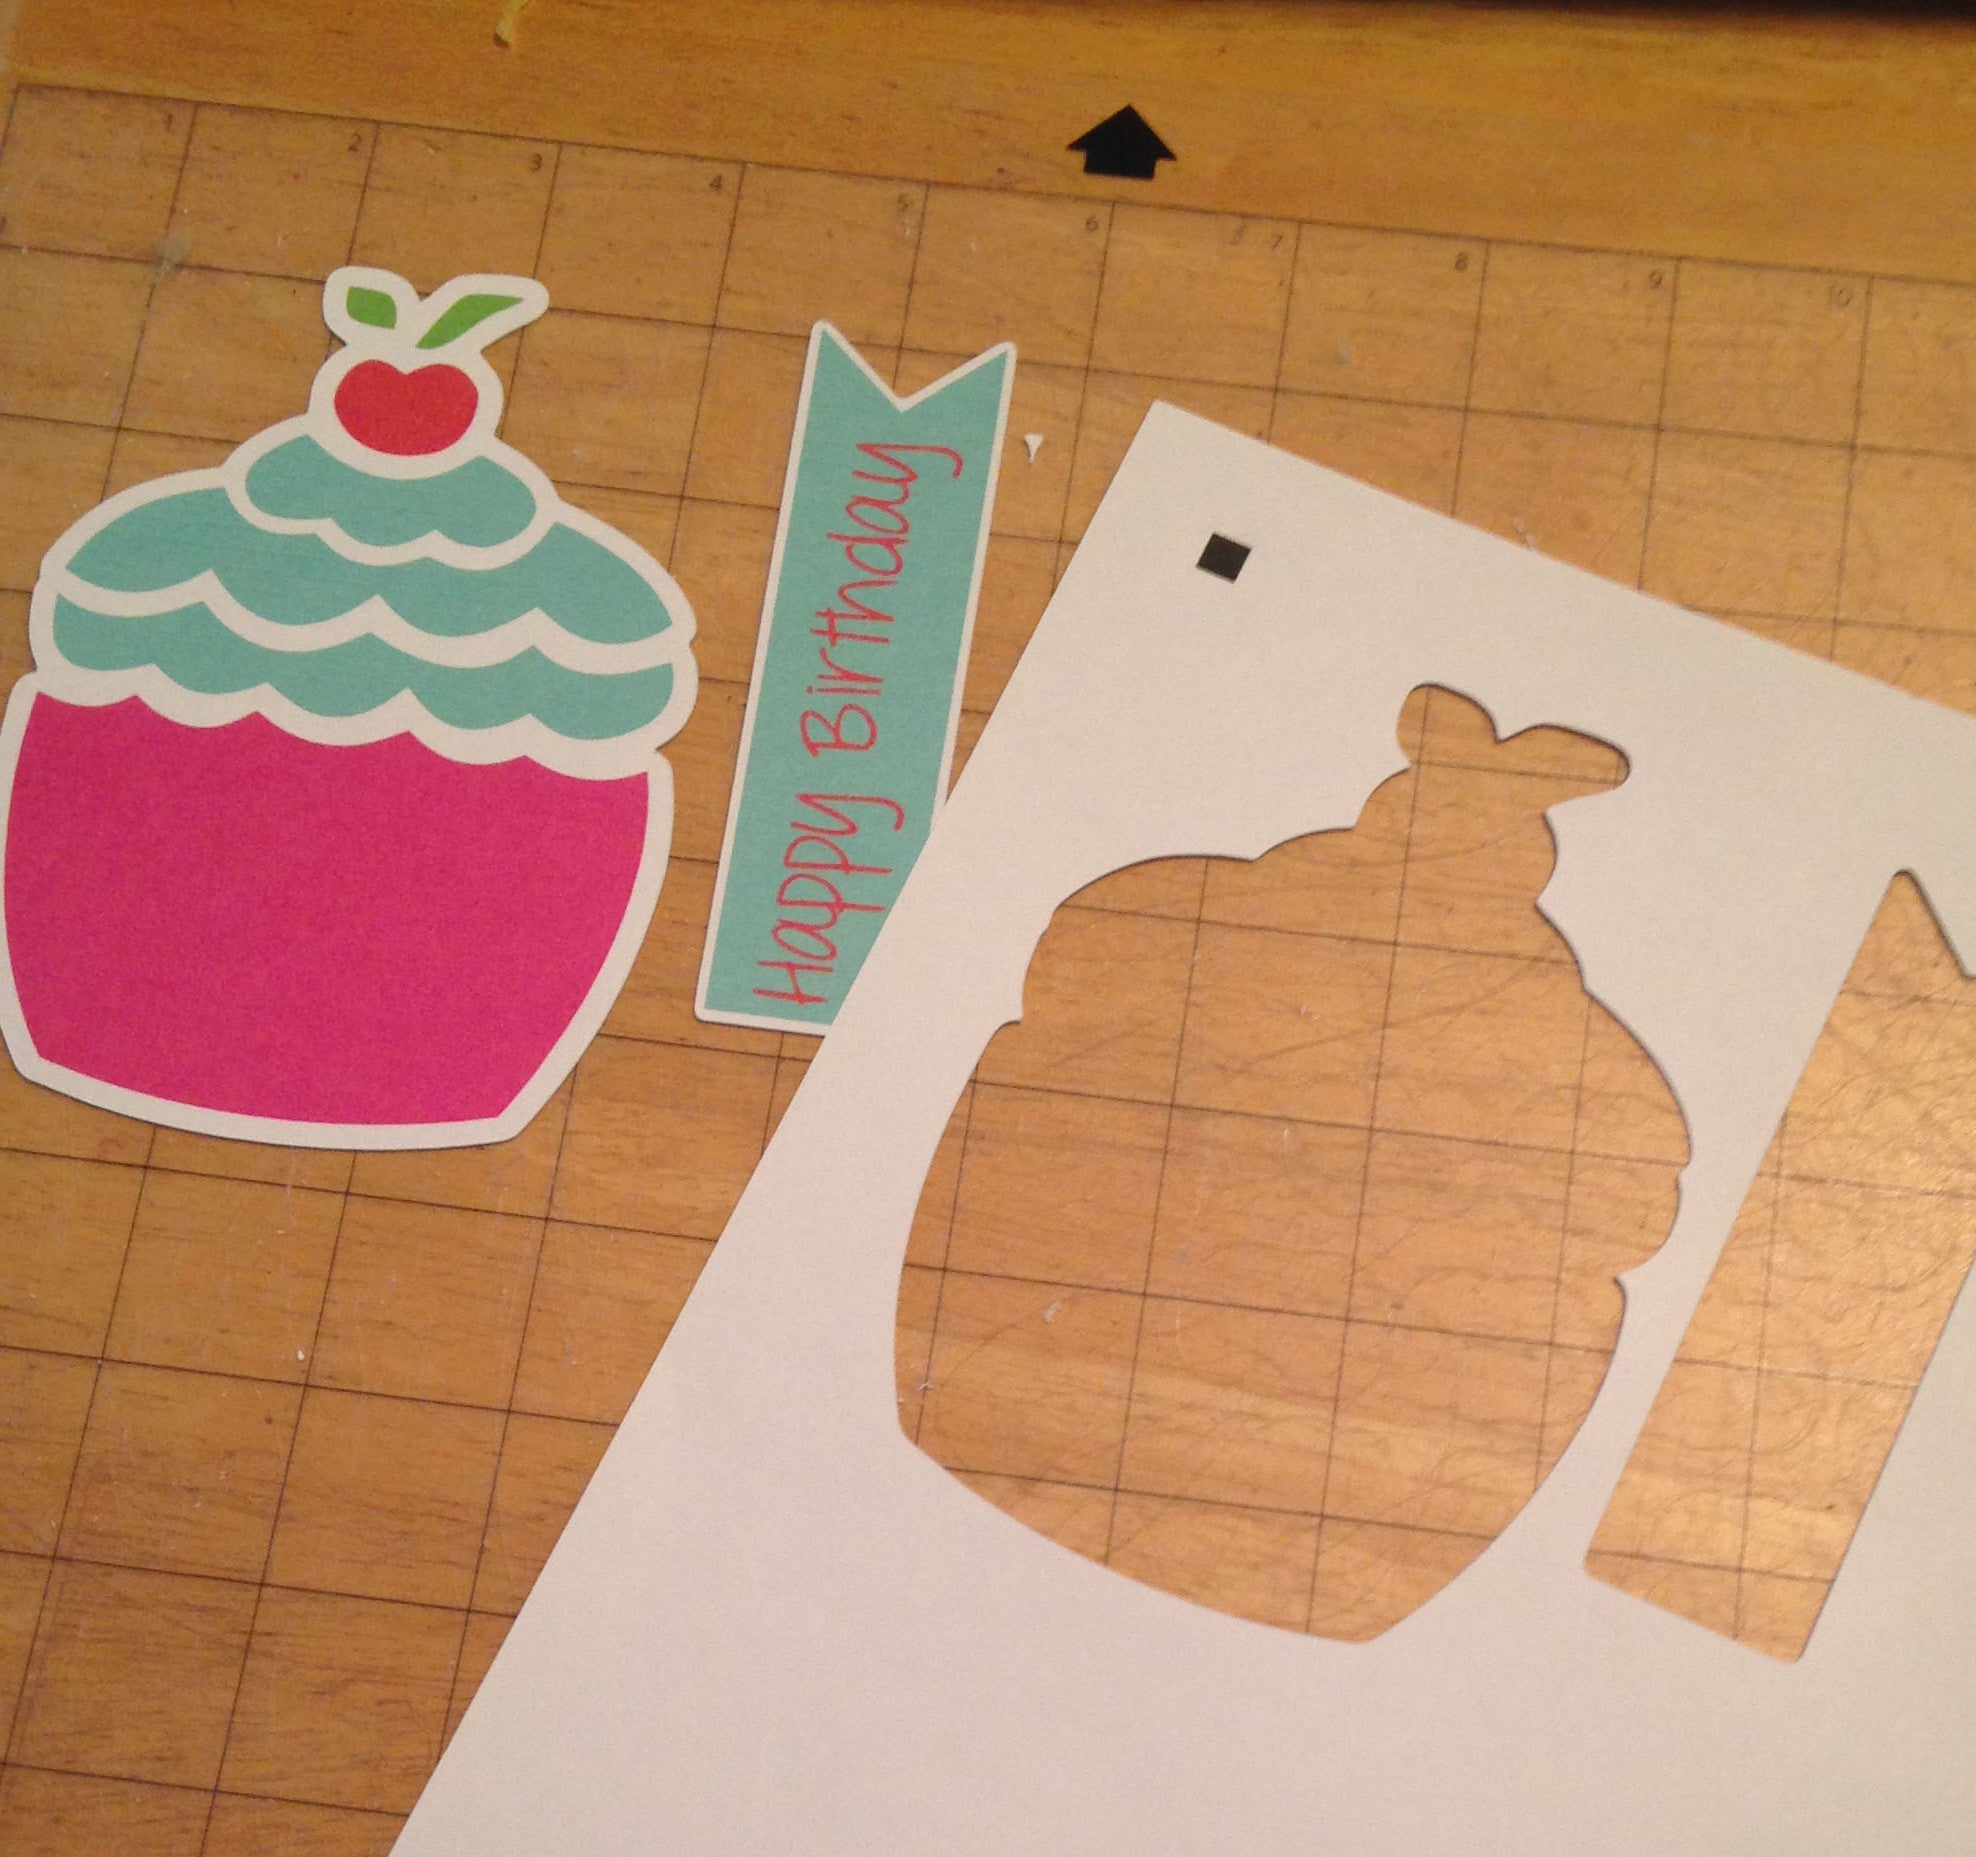 The Silhouette is so handy!  Check out these perfectly cut embellishments I can put together to make a quick and easy card!